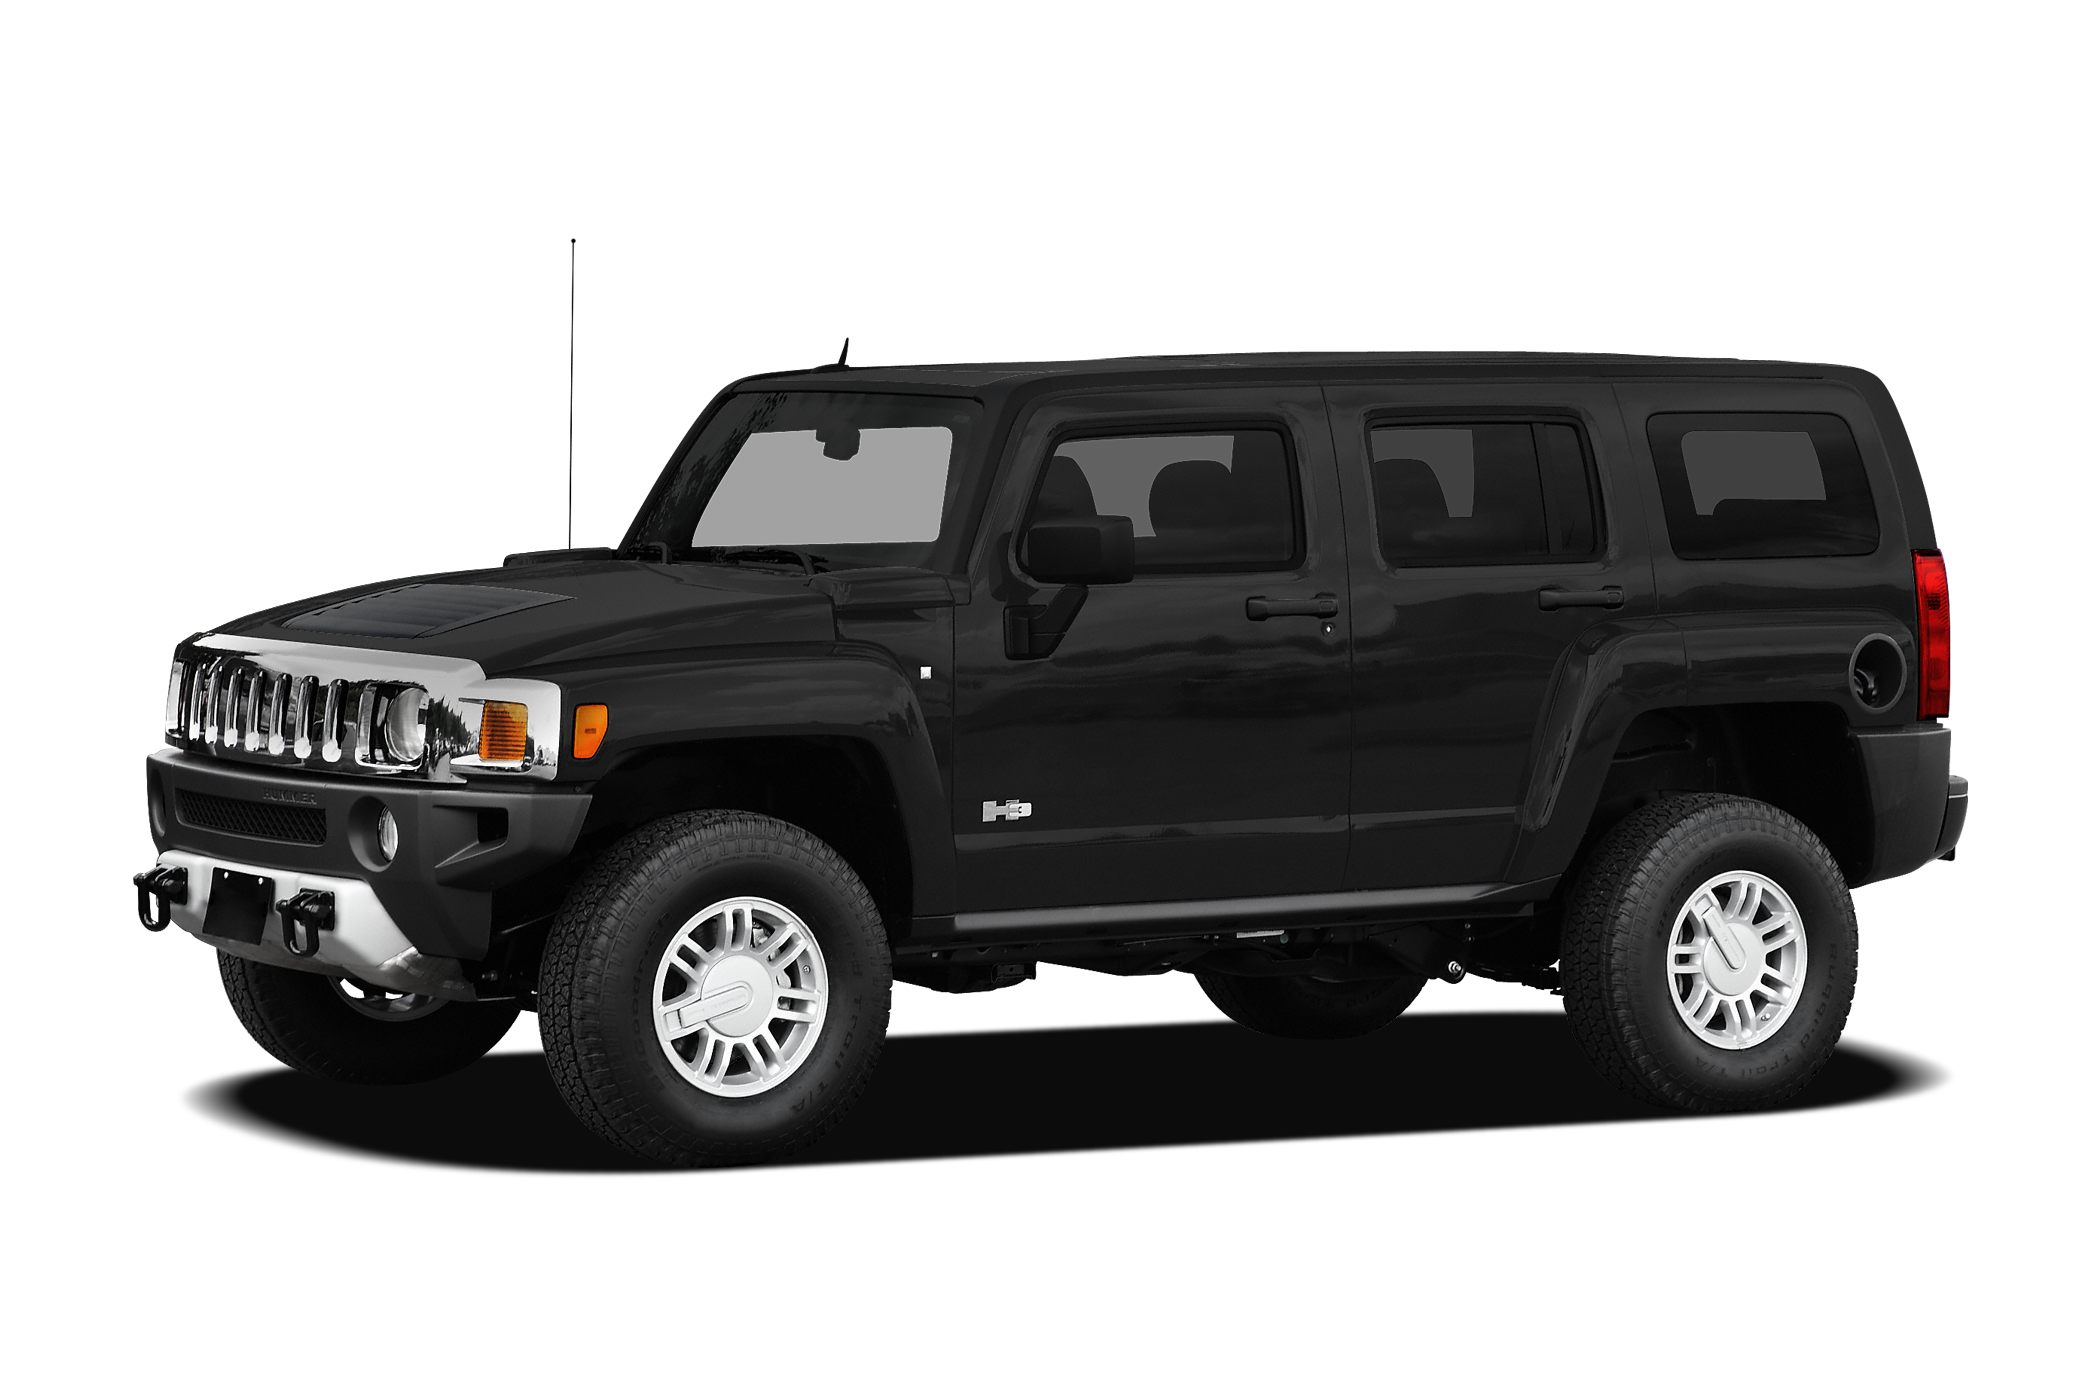 2010 Hummer H3 Luxury Edition SUV for sale in Jonesboro for $24,911 with 73,051 miles